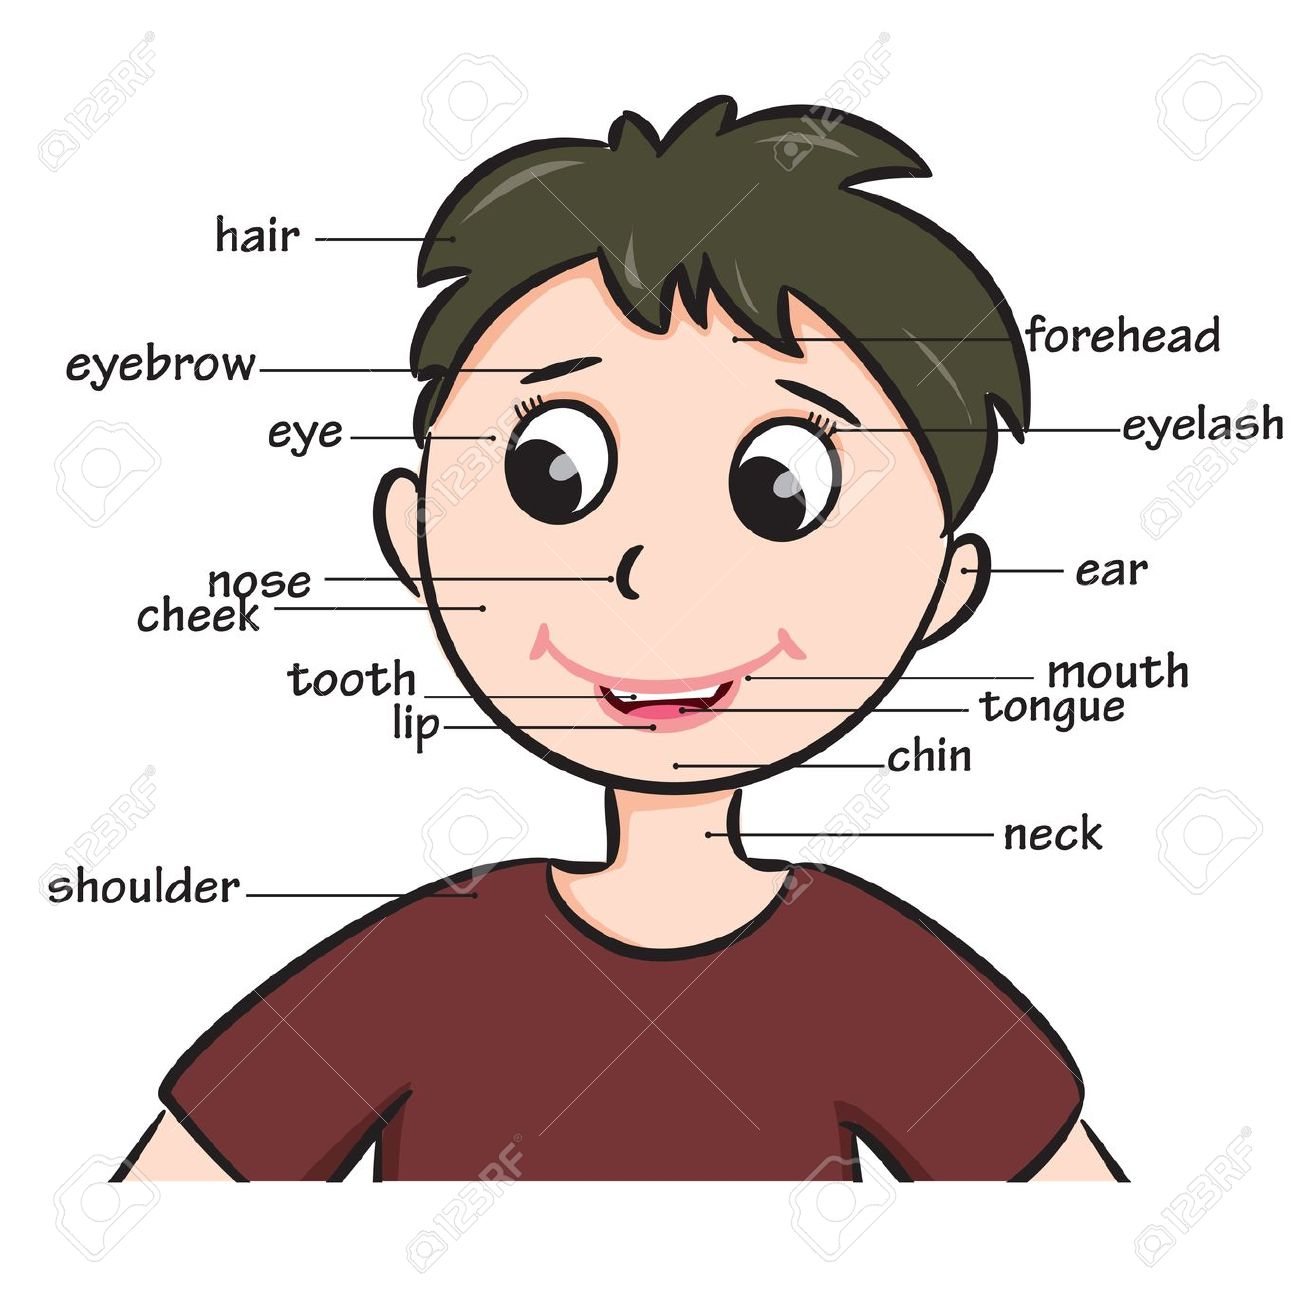 Parts of the human. Body clipart face